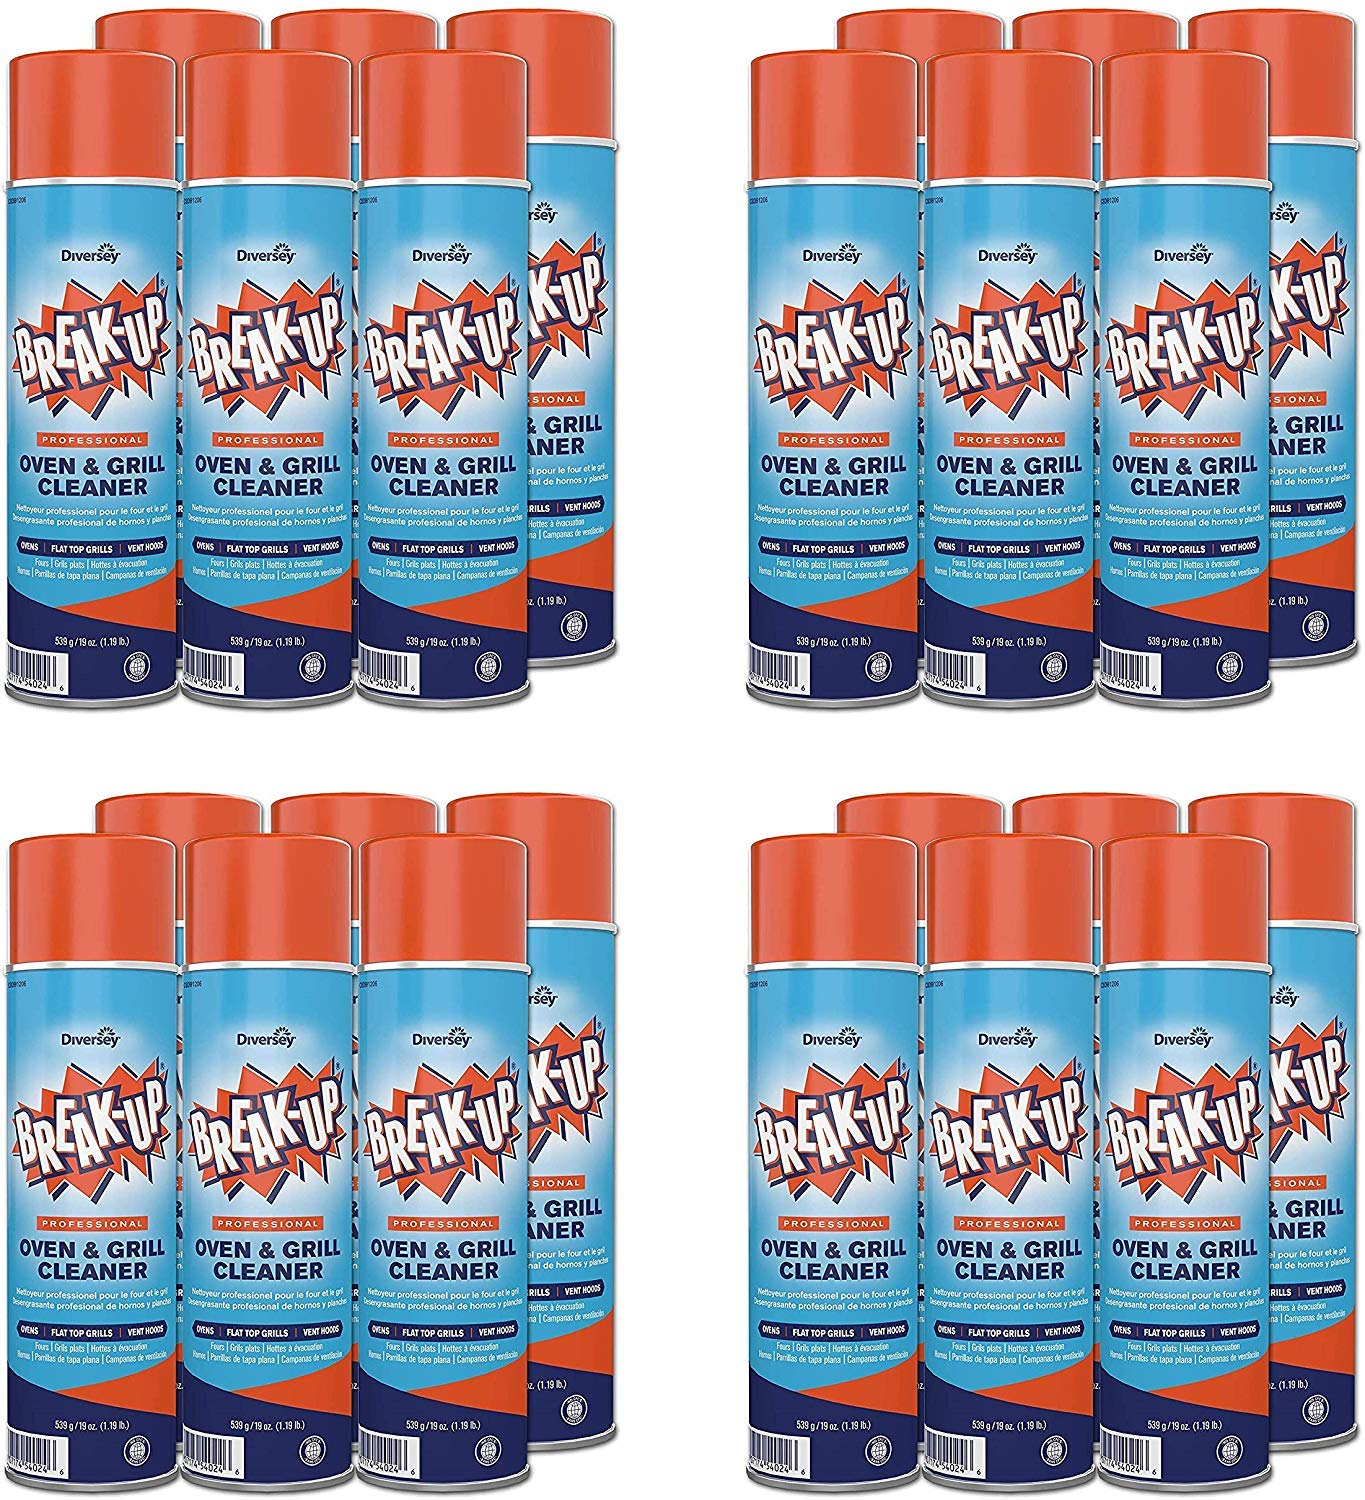 Diversey Break-Up Professional Oven & Grill Cleaner, Aerosol, 19 oz. (4 X Pack of 6) by Diversey